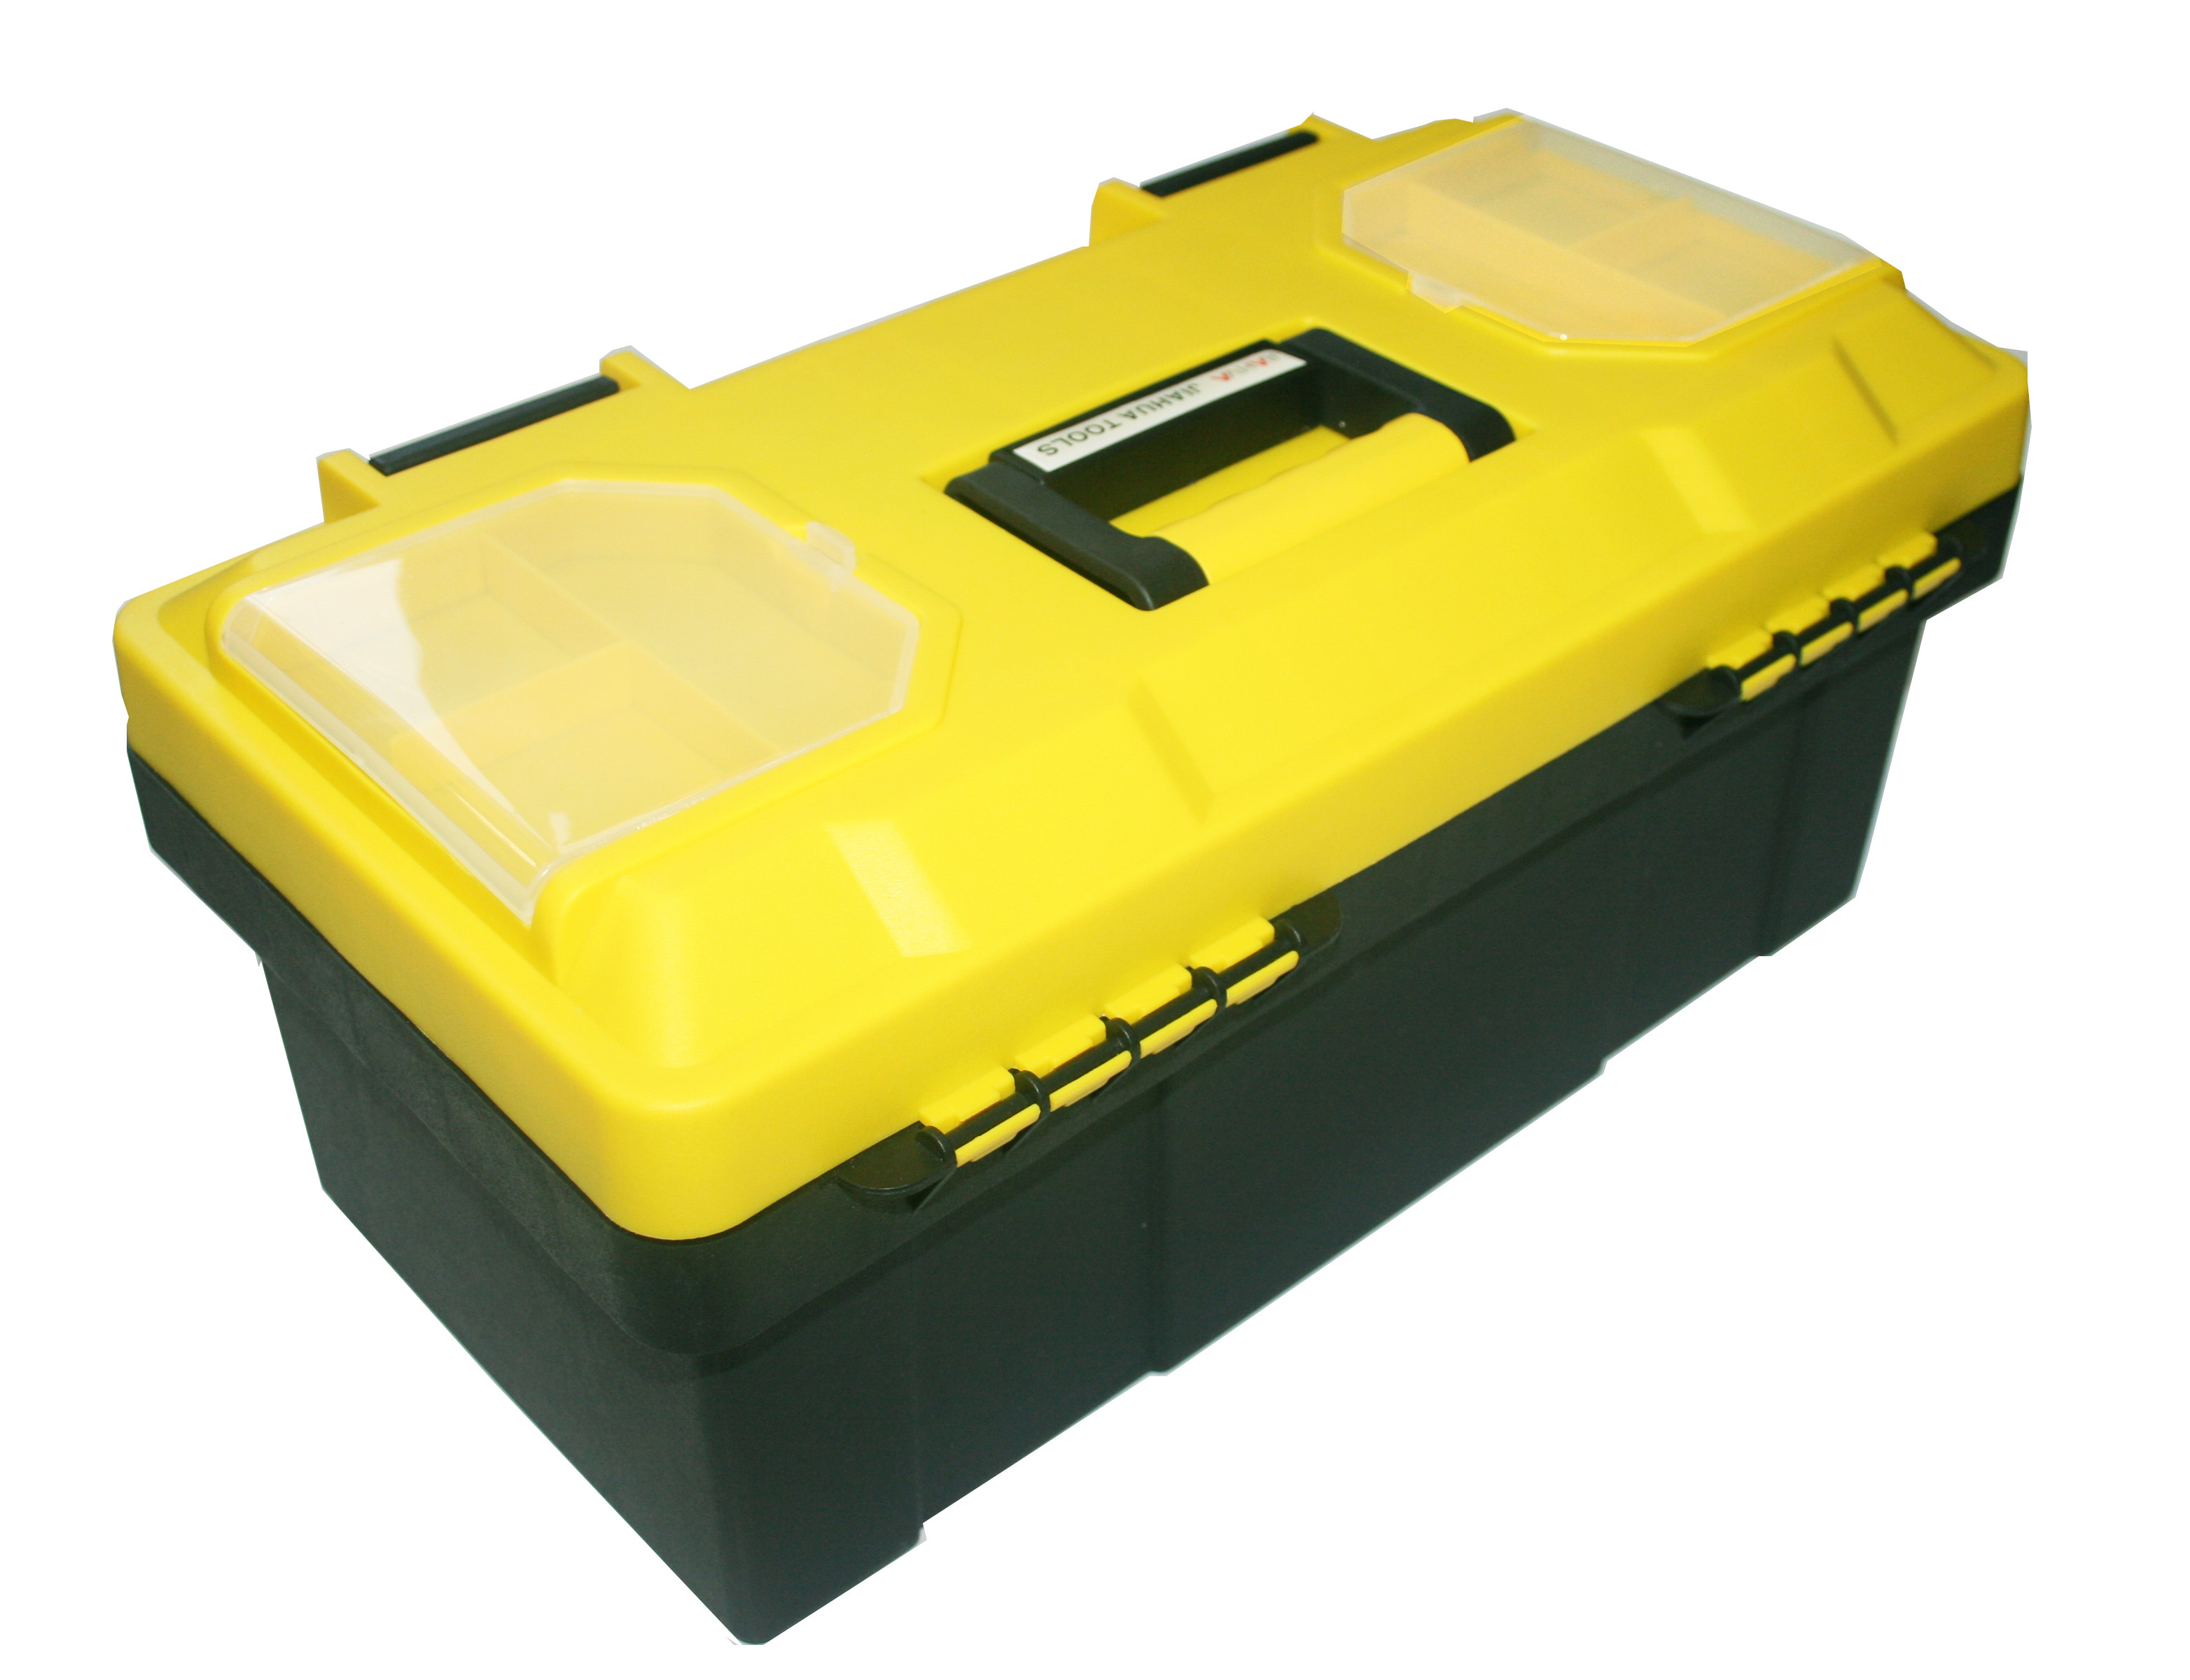 Professional Handware Toolbox With Handle For Convenience